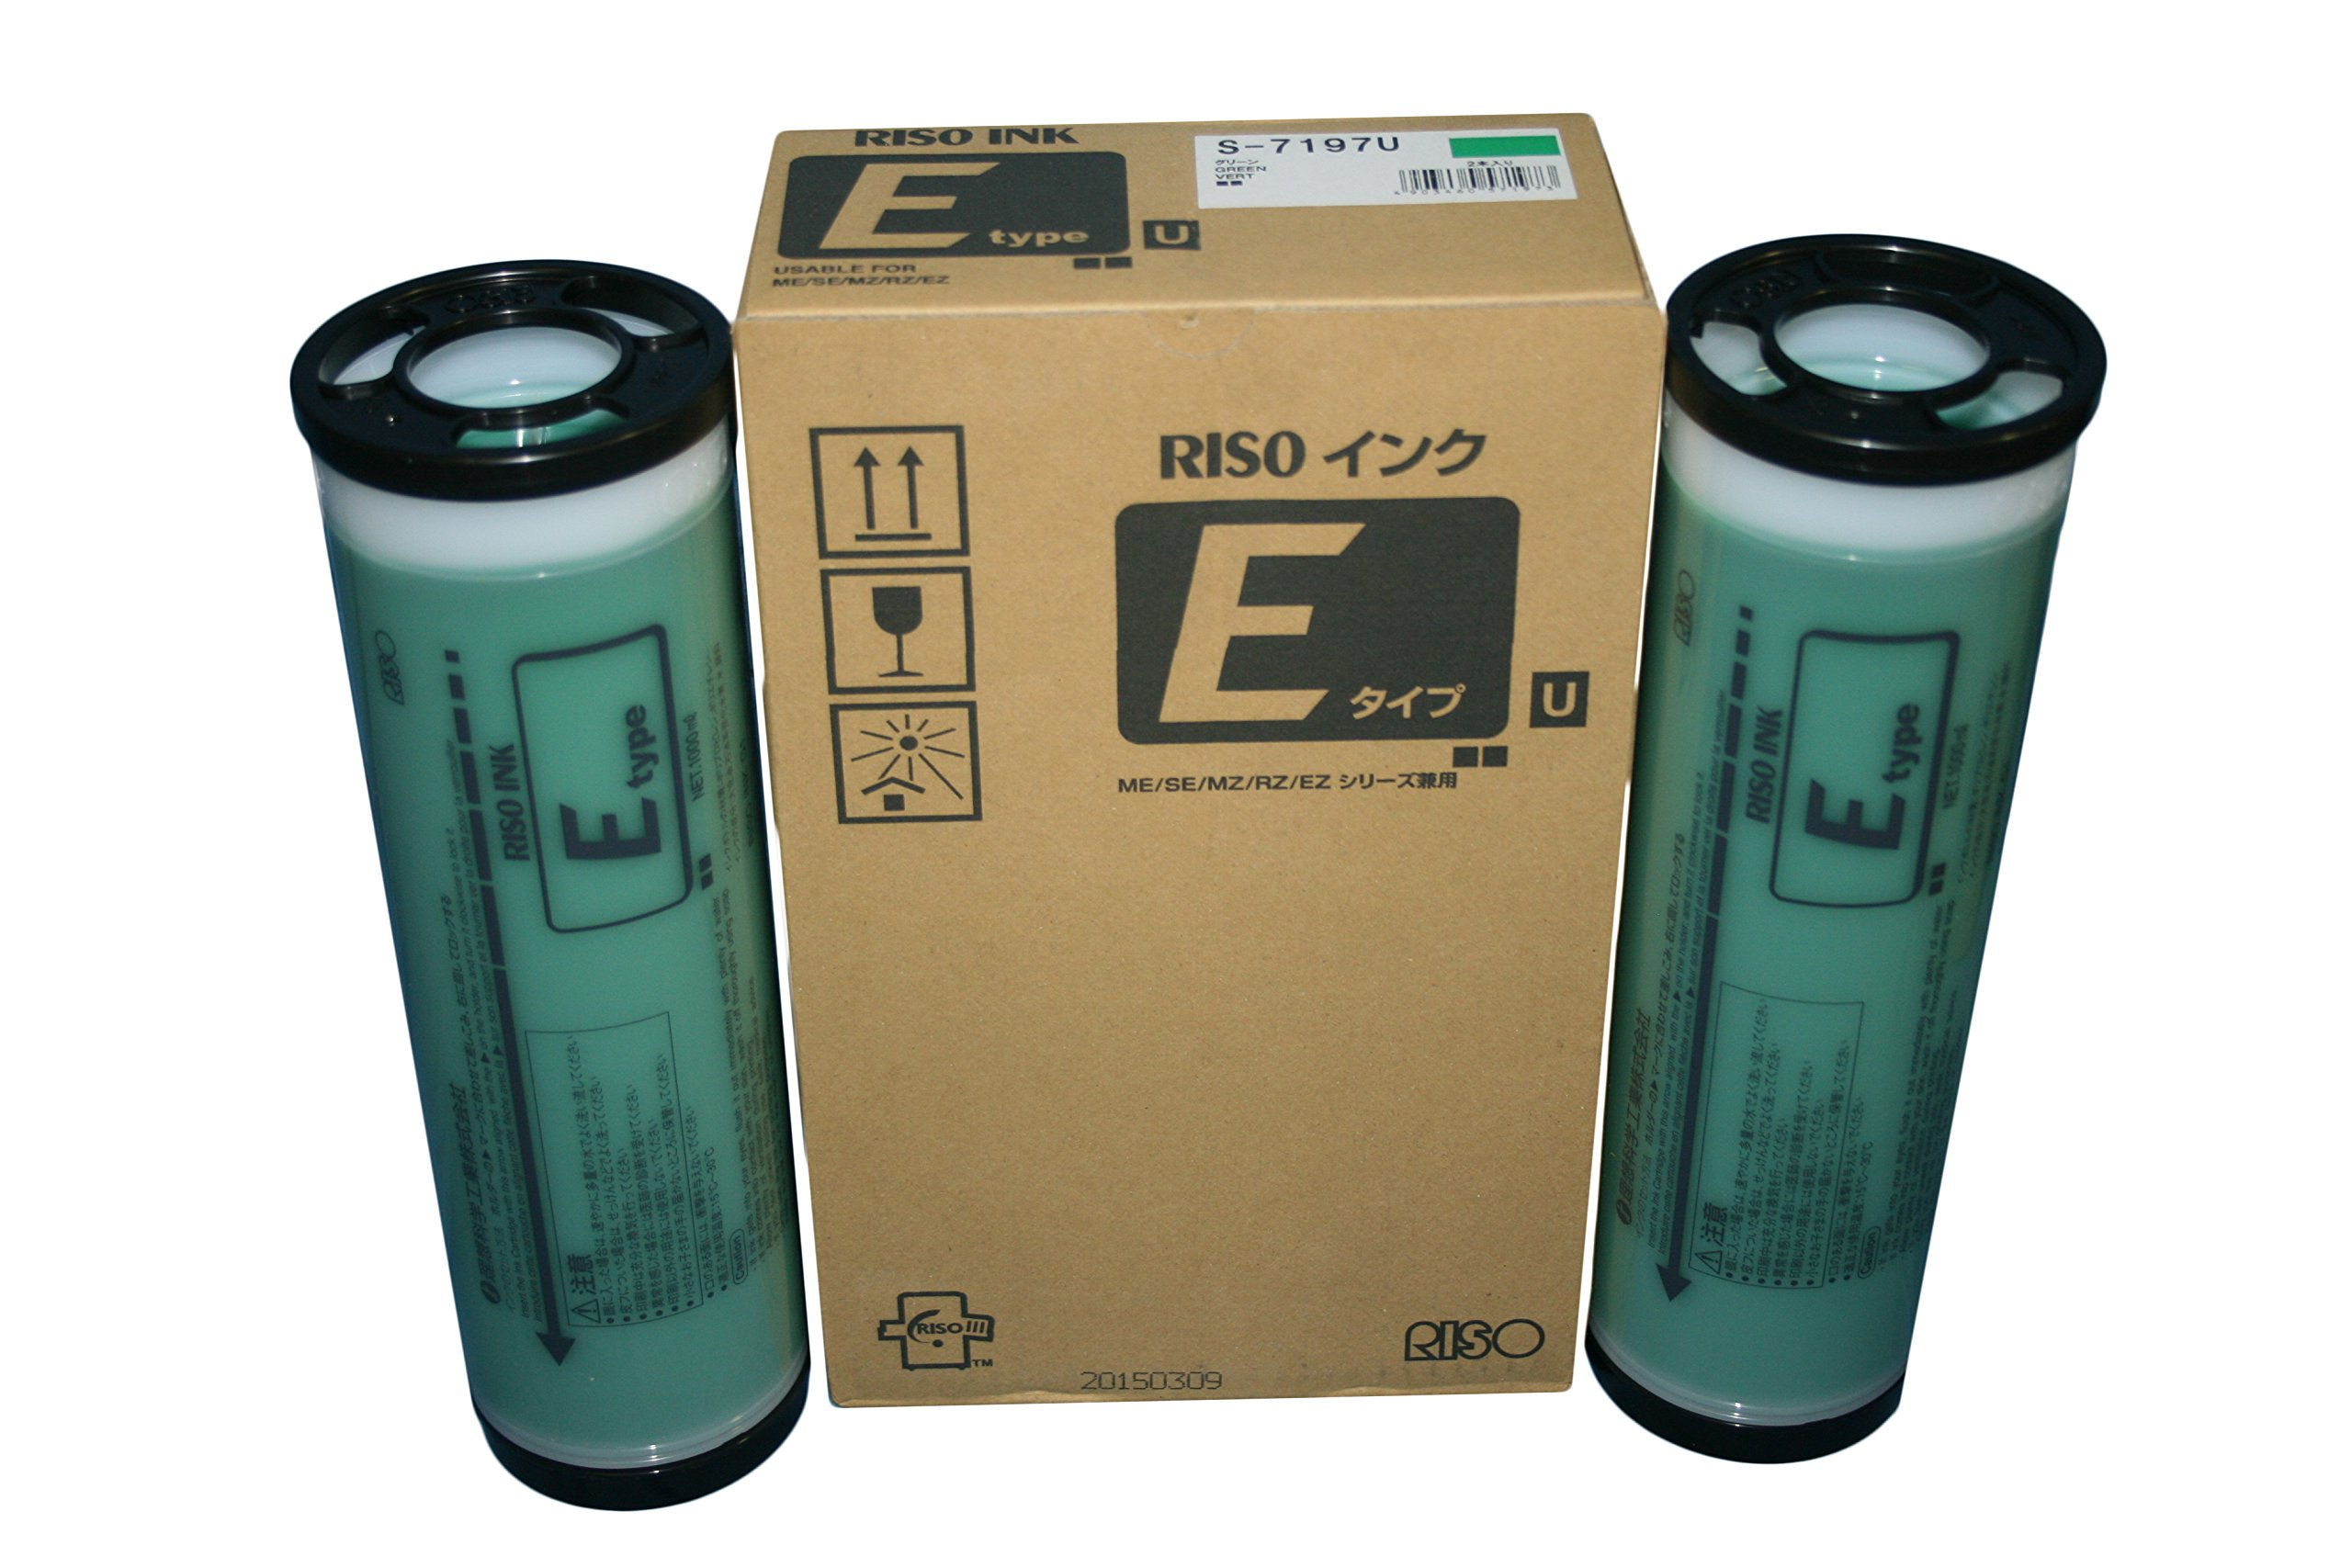 2 Riso S-7197 Green Ink, for Risograph EZ, MZ, and RZ Series Duplicators by RISO